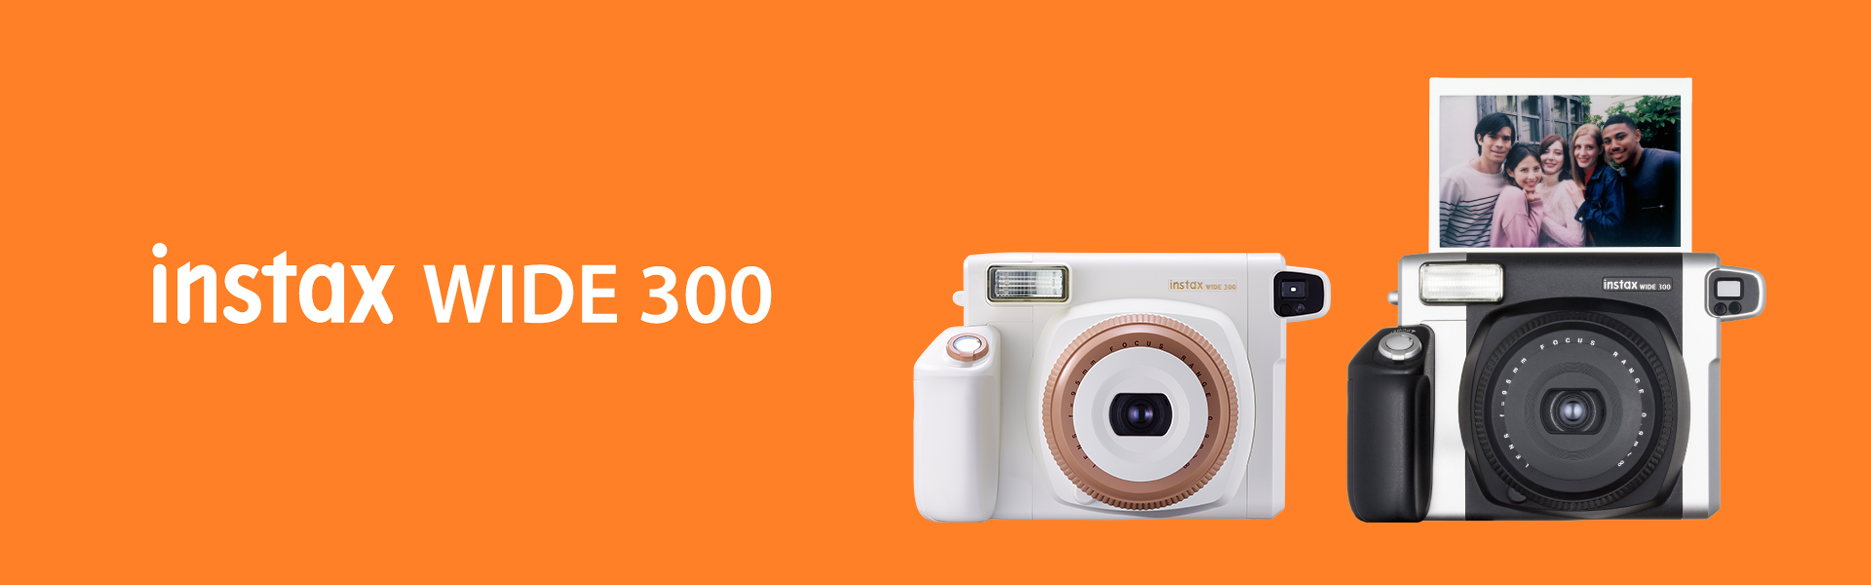 [photo] Instax WIDE 300 camera in Black and Toffee colors on an orange background with a title